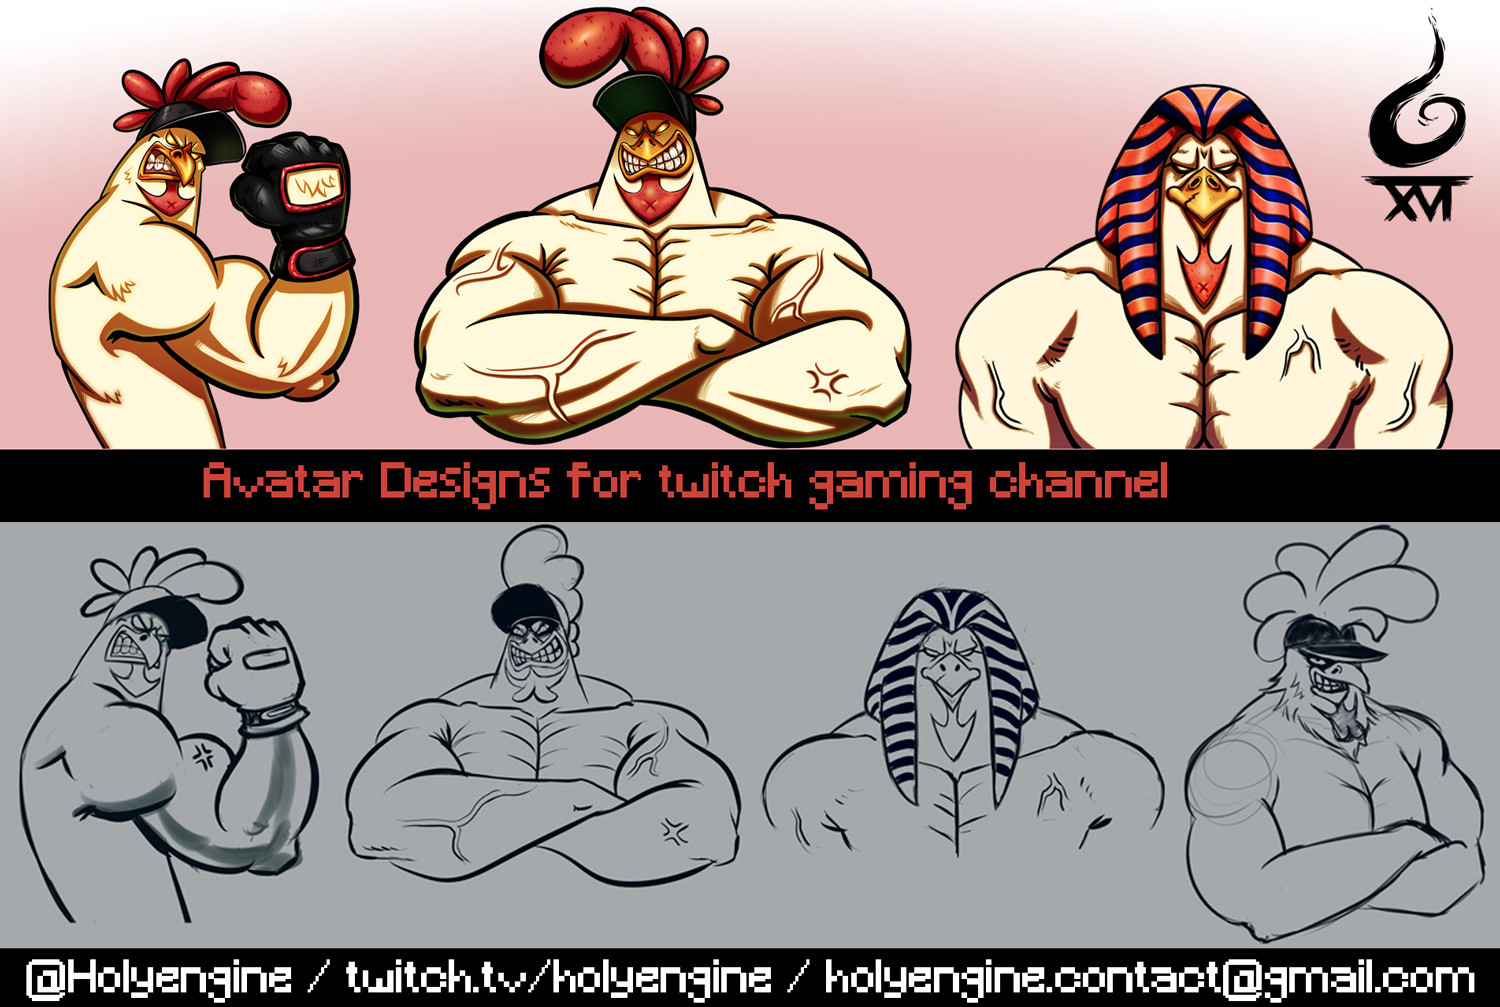 KheopsGaming Avatar Designs for twitch gaming channel